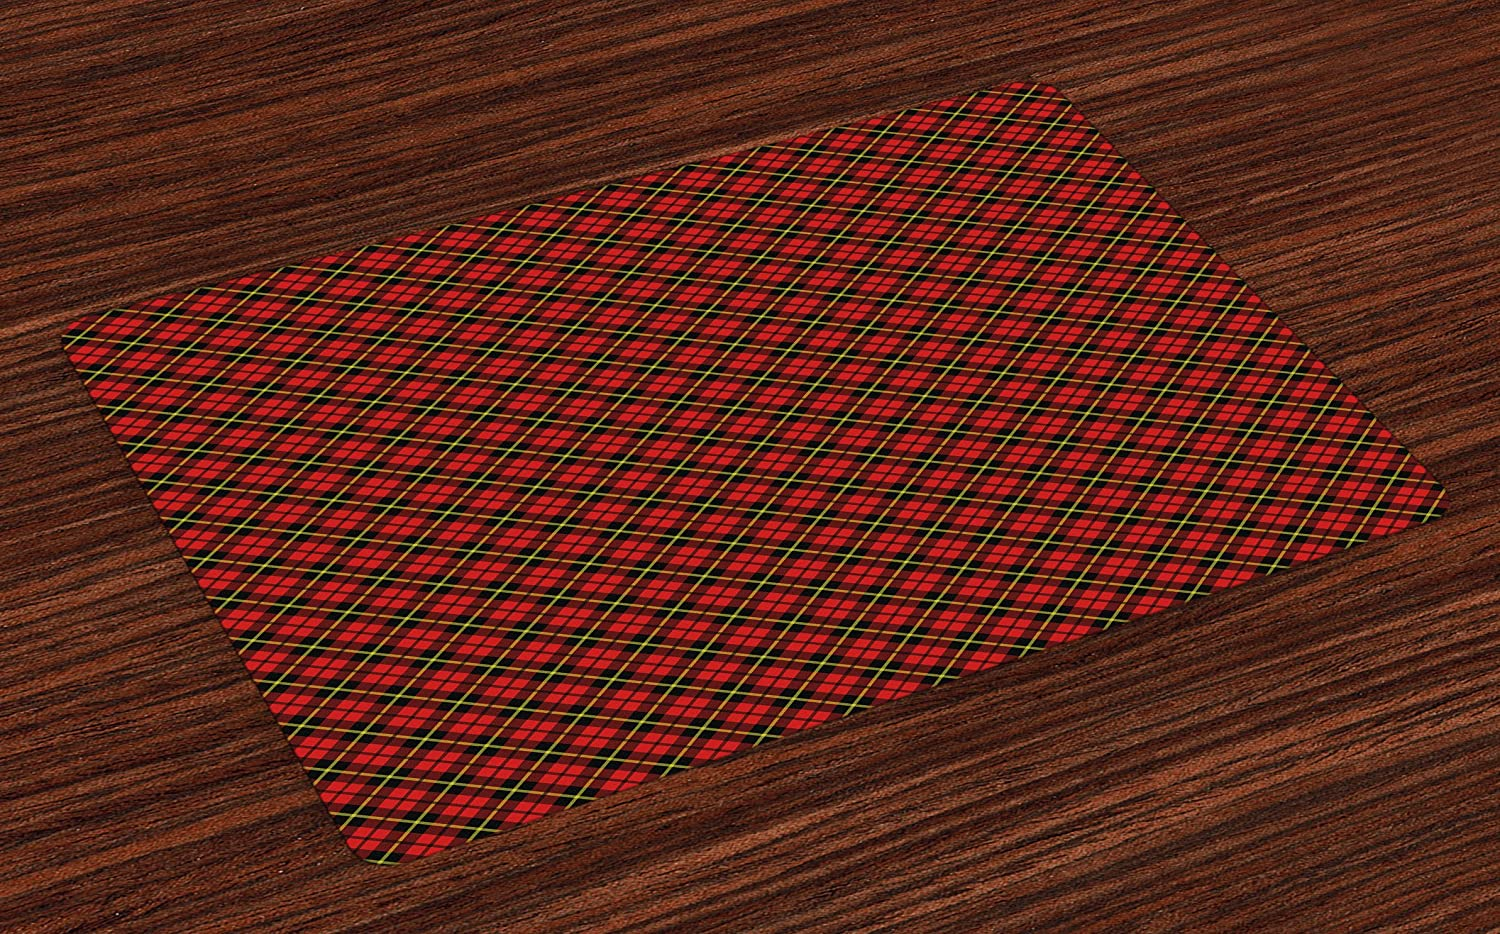 Lunarable Geometric Place Mats Set of 4, Traditional Scottish Plaid Pattern Tartan Tile Checked Striped Retro Print, Washable Fabric Placemats for Dining Room Kitchen Table Decor, Red Black Yellow